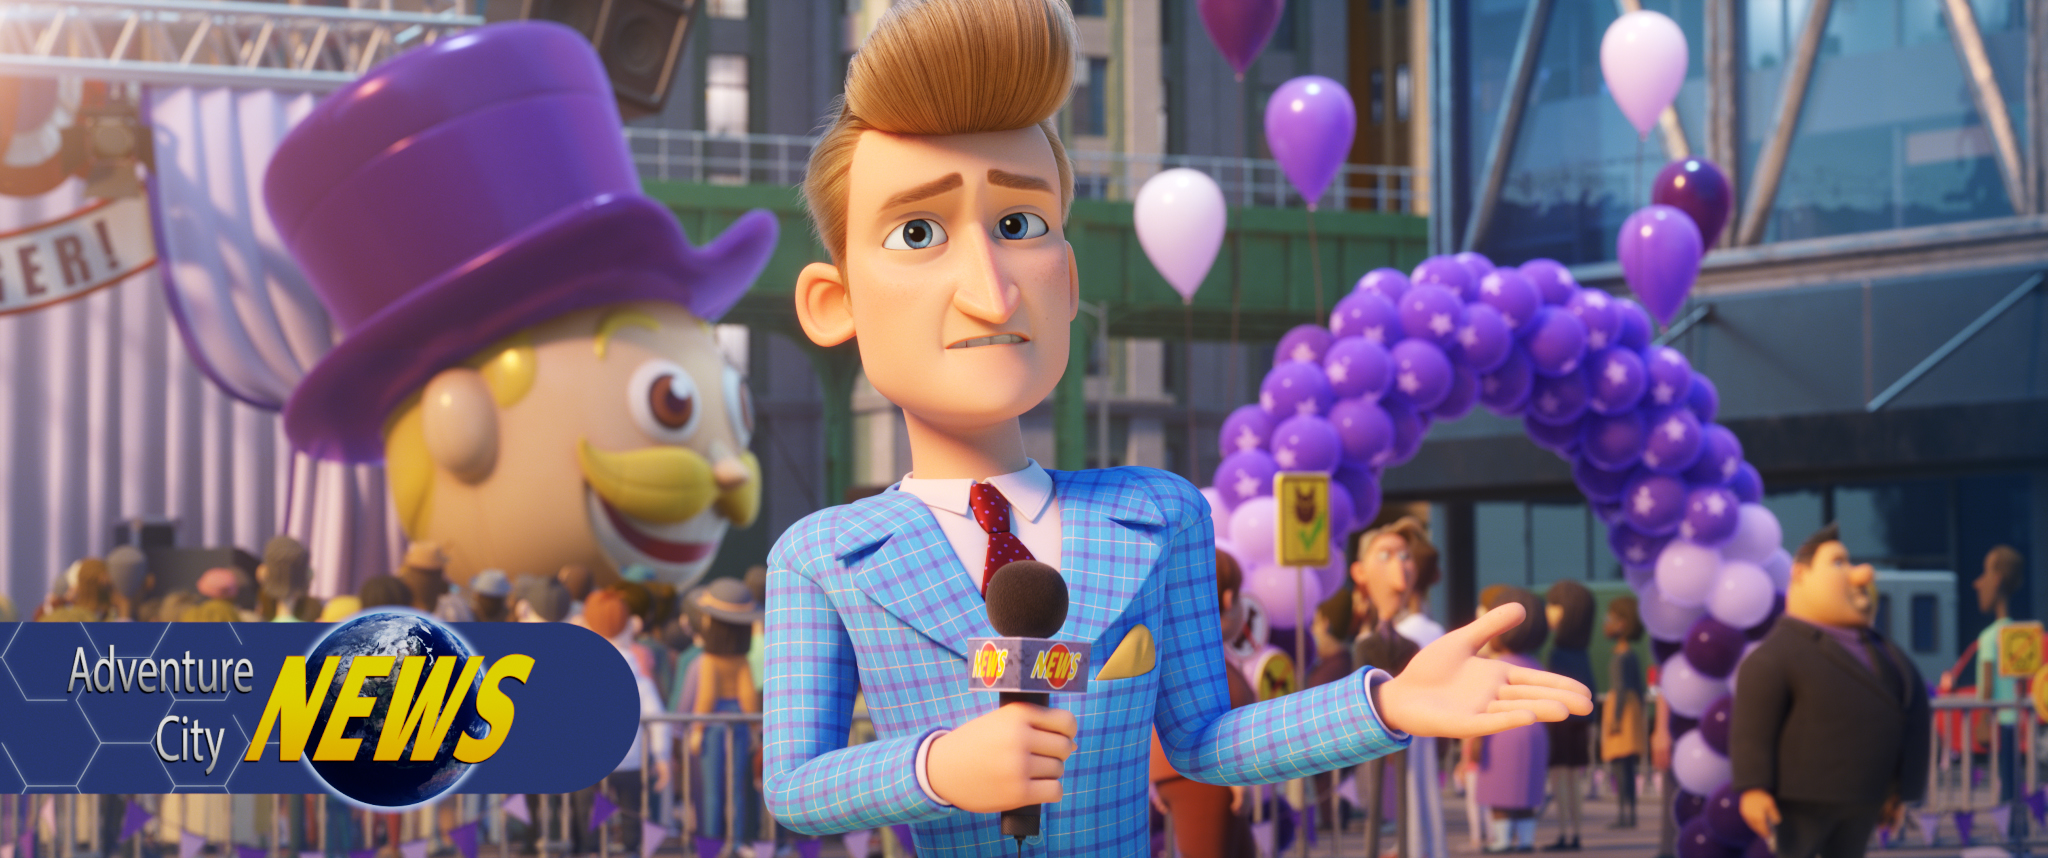 Marty Muckracker (voiced by Jimmy Kimmel) in PAW PATROL: THE MOVIE from Paramount Pictures. Photo Credit: Courtesy of Spin Master.